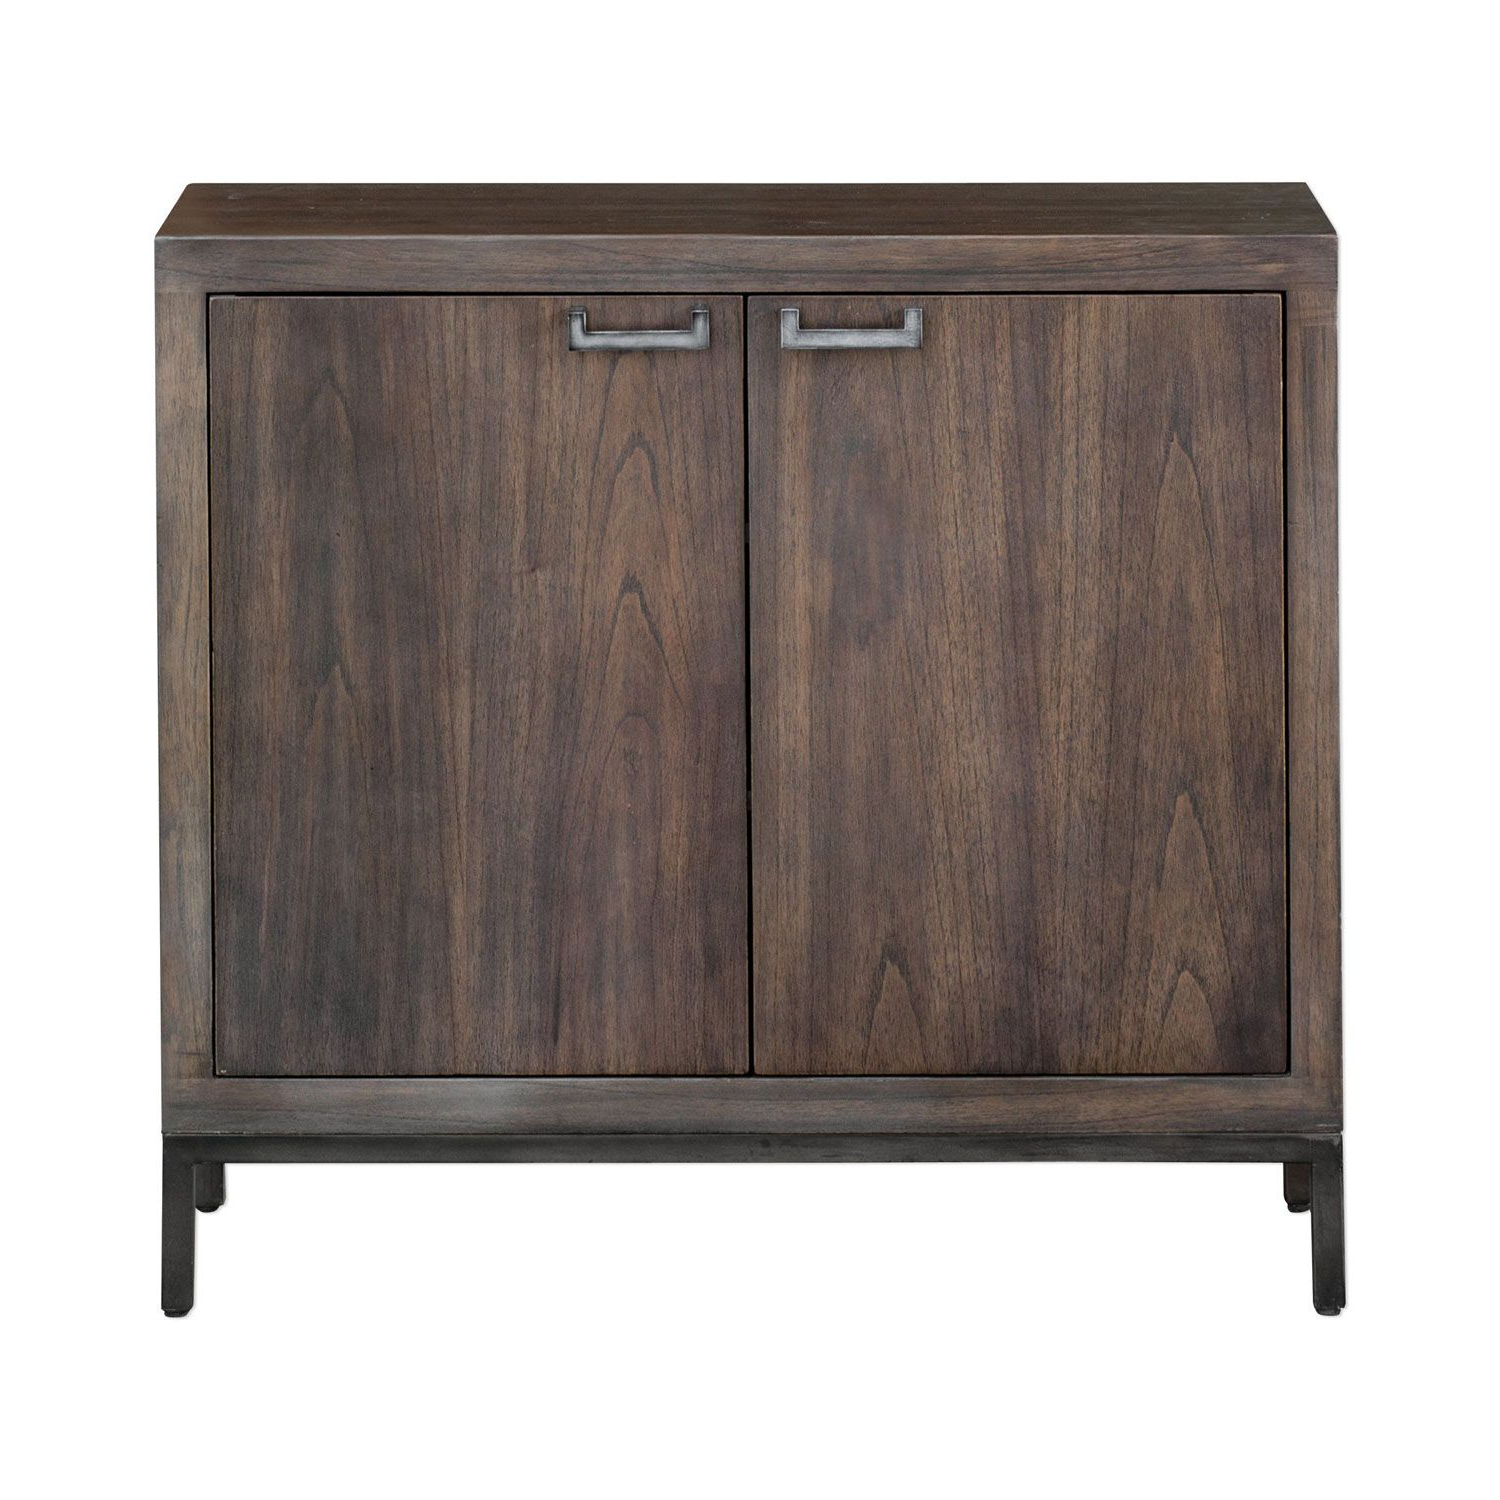 """Uttermost Nadie Light Walnut Console Cabinet 25866 Intended For Current Macdonald 36"""" Wide Mango Wood Buffet Tables (View 2 of 20)"""